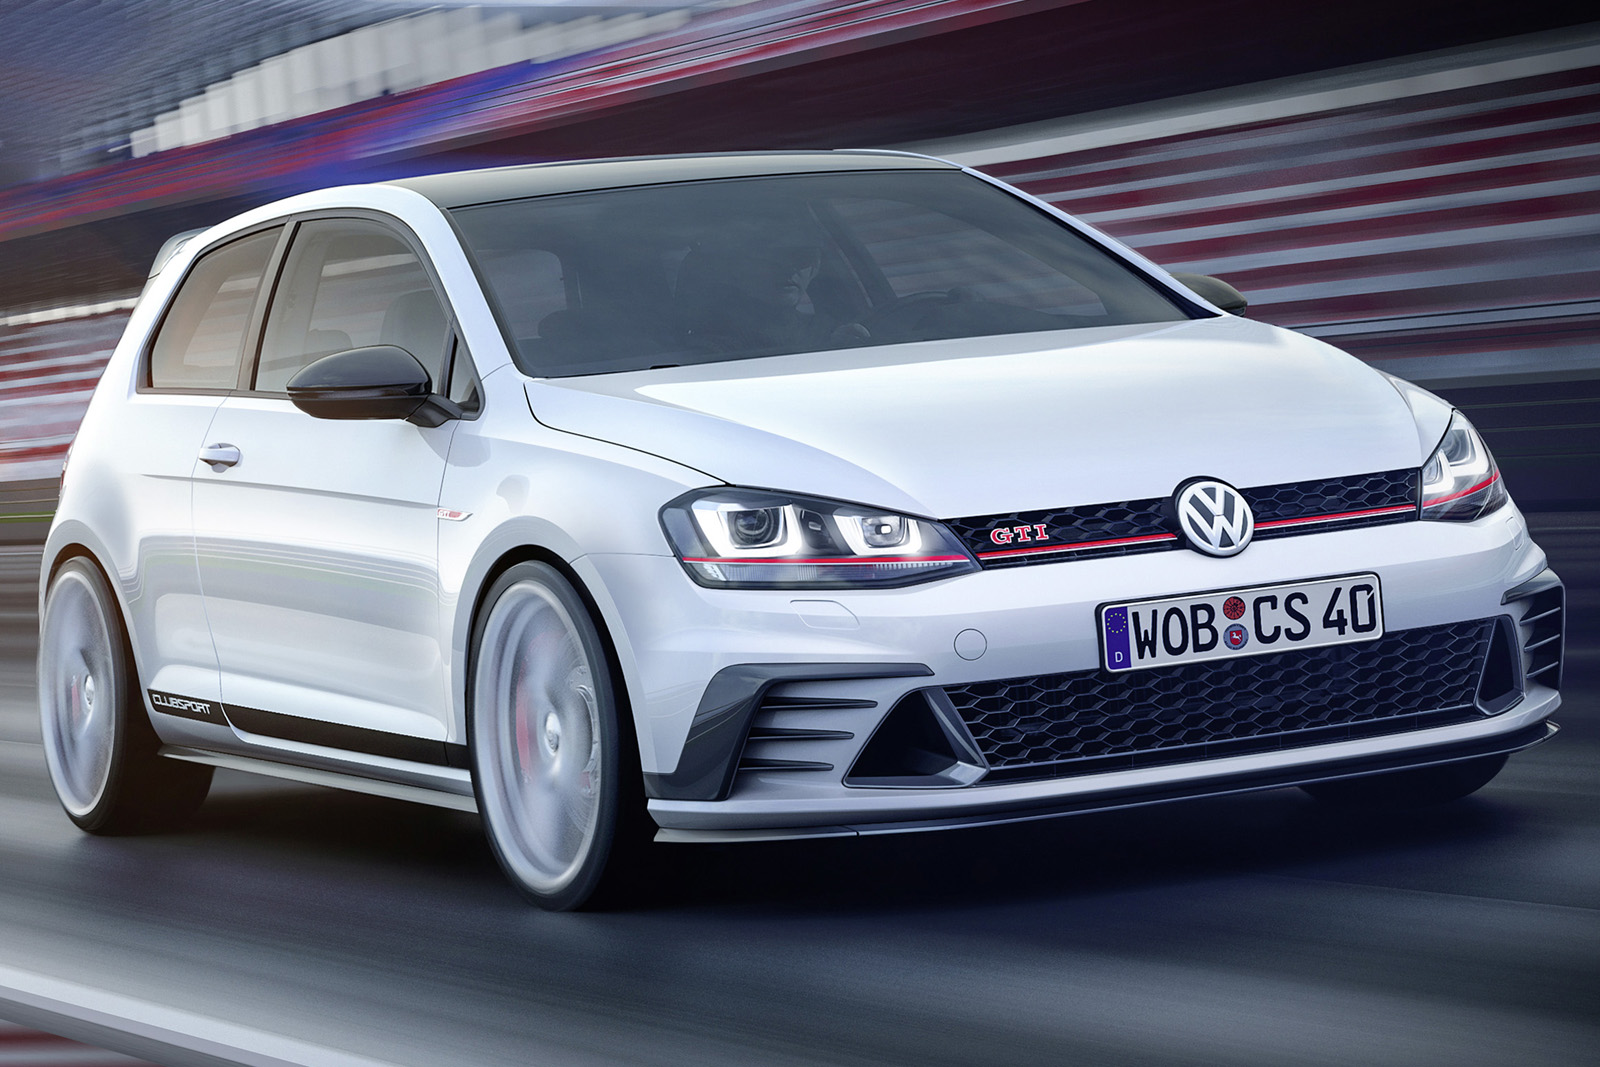 release date and pricing on the 2016 vw golf gti clubsport. Black Bedroom Furniture Sets. Home Design Ideas